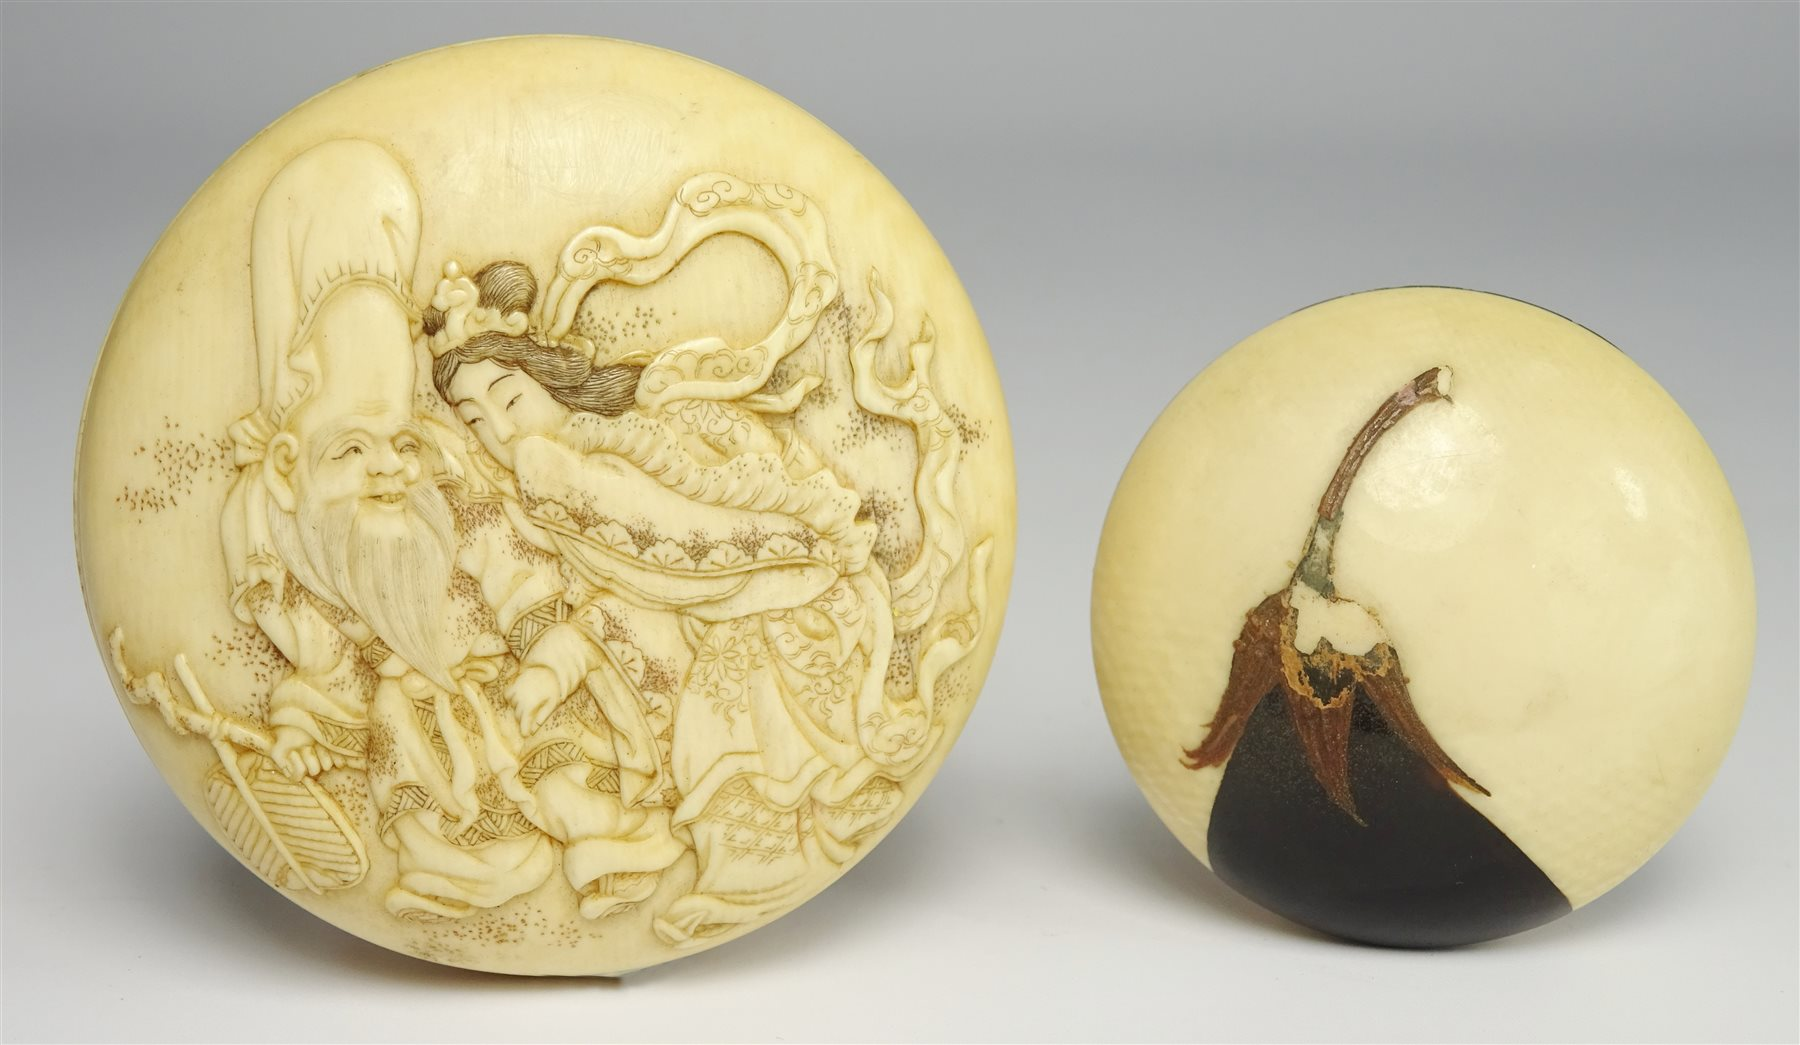 Japanese Ivory Kagamibuta Netsuke Carved With Figures And